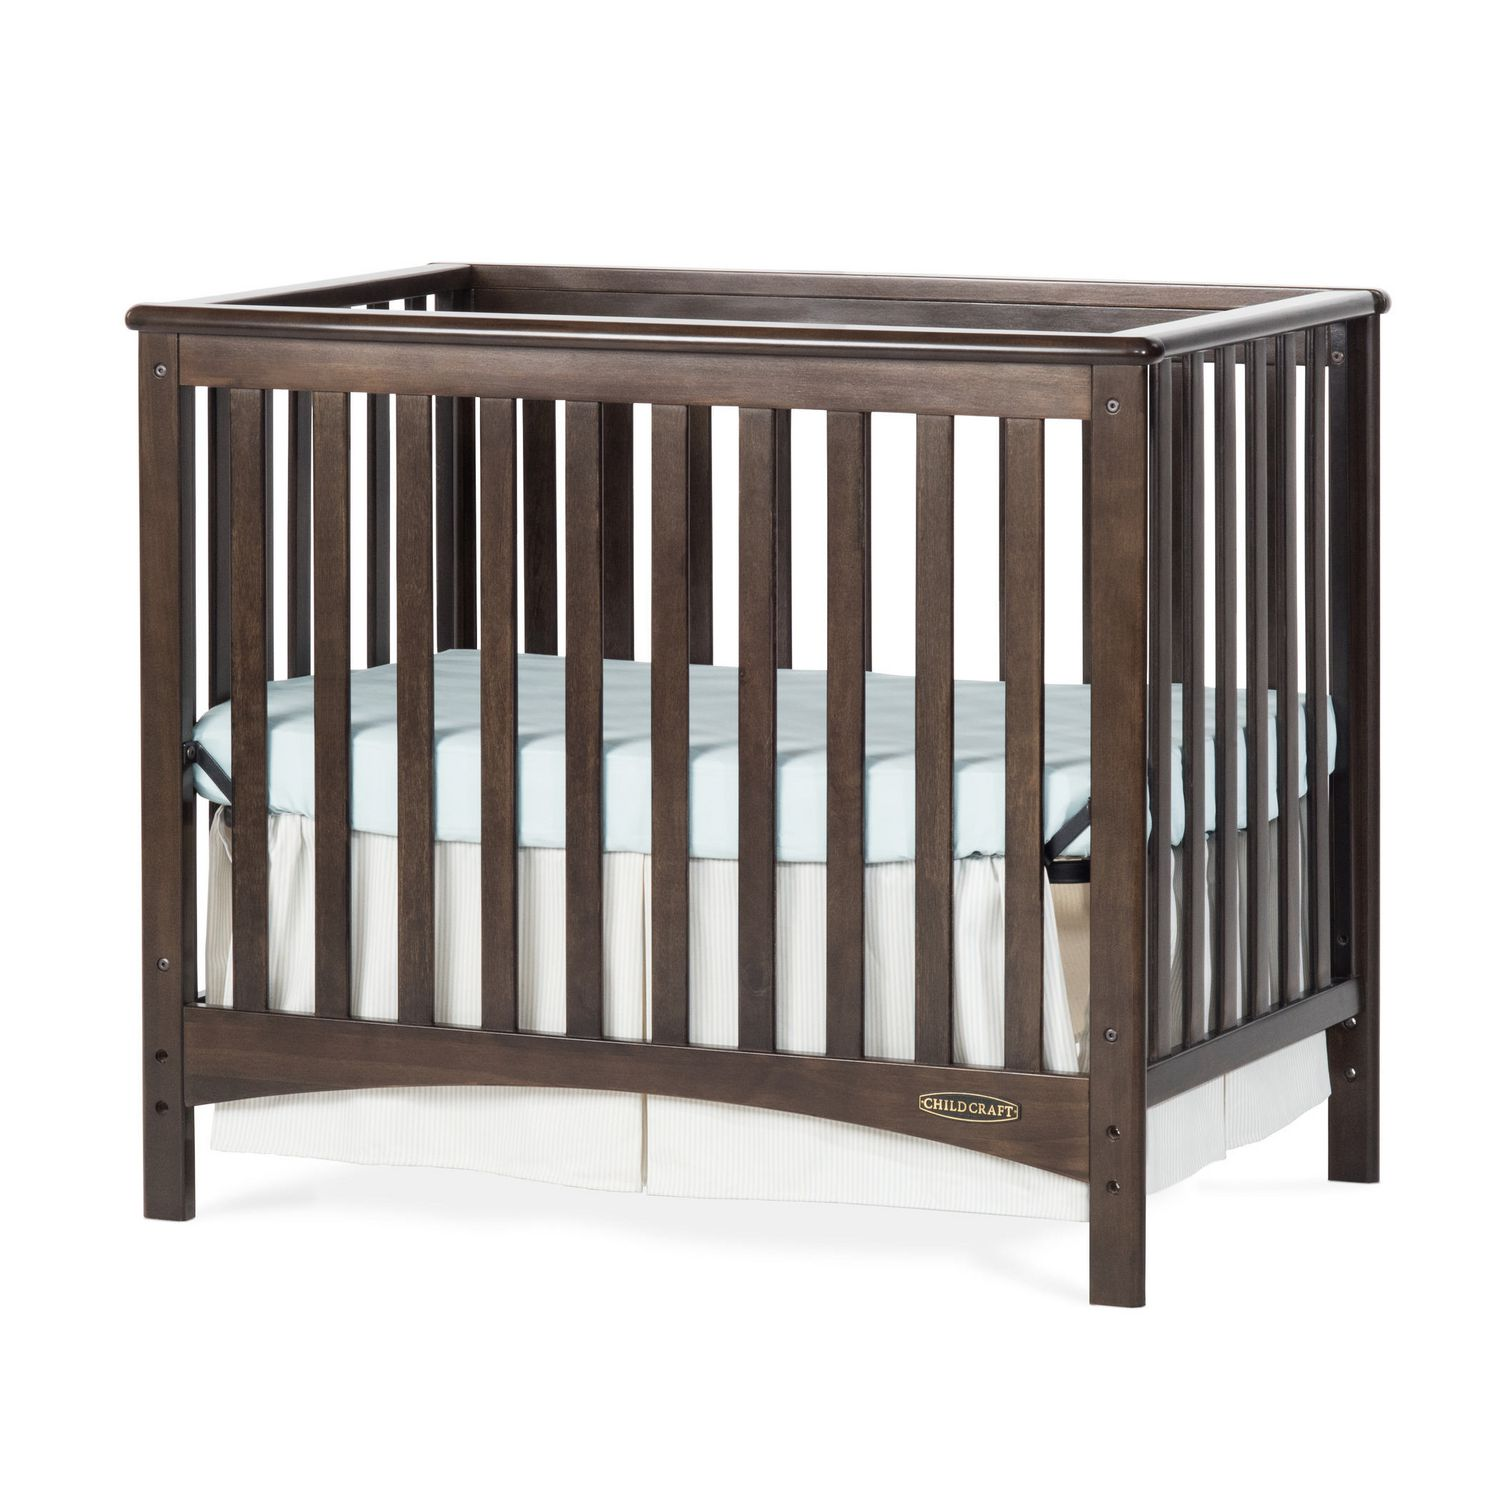 Cheapest Place To Buy Baby Furniture #22: Child Craft London Mini Crib